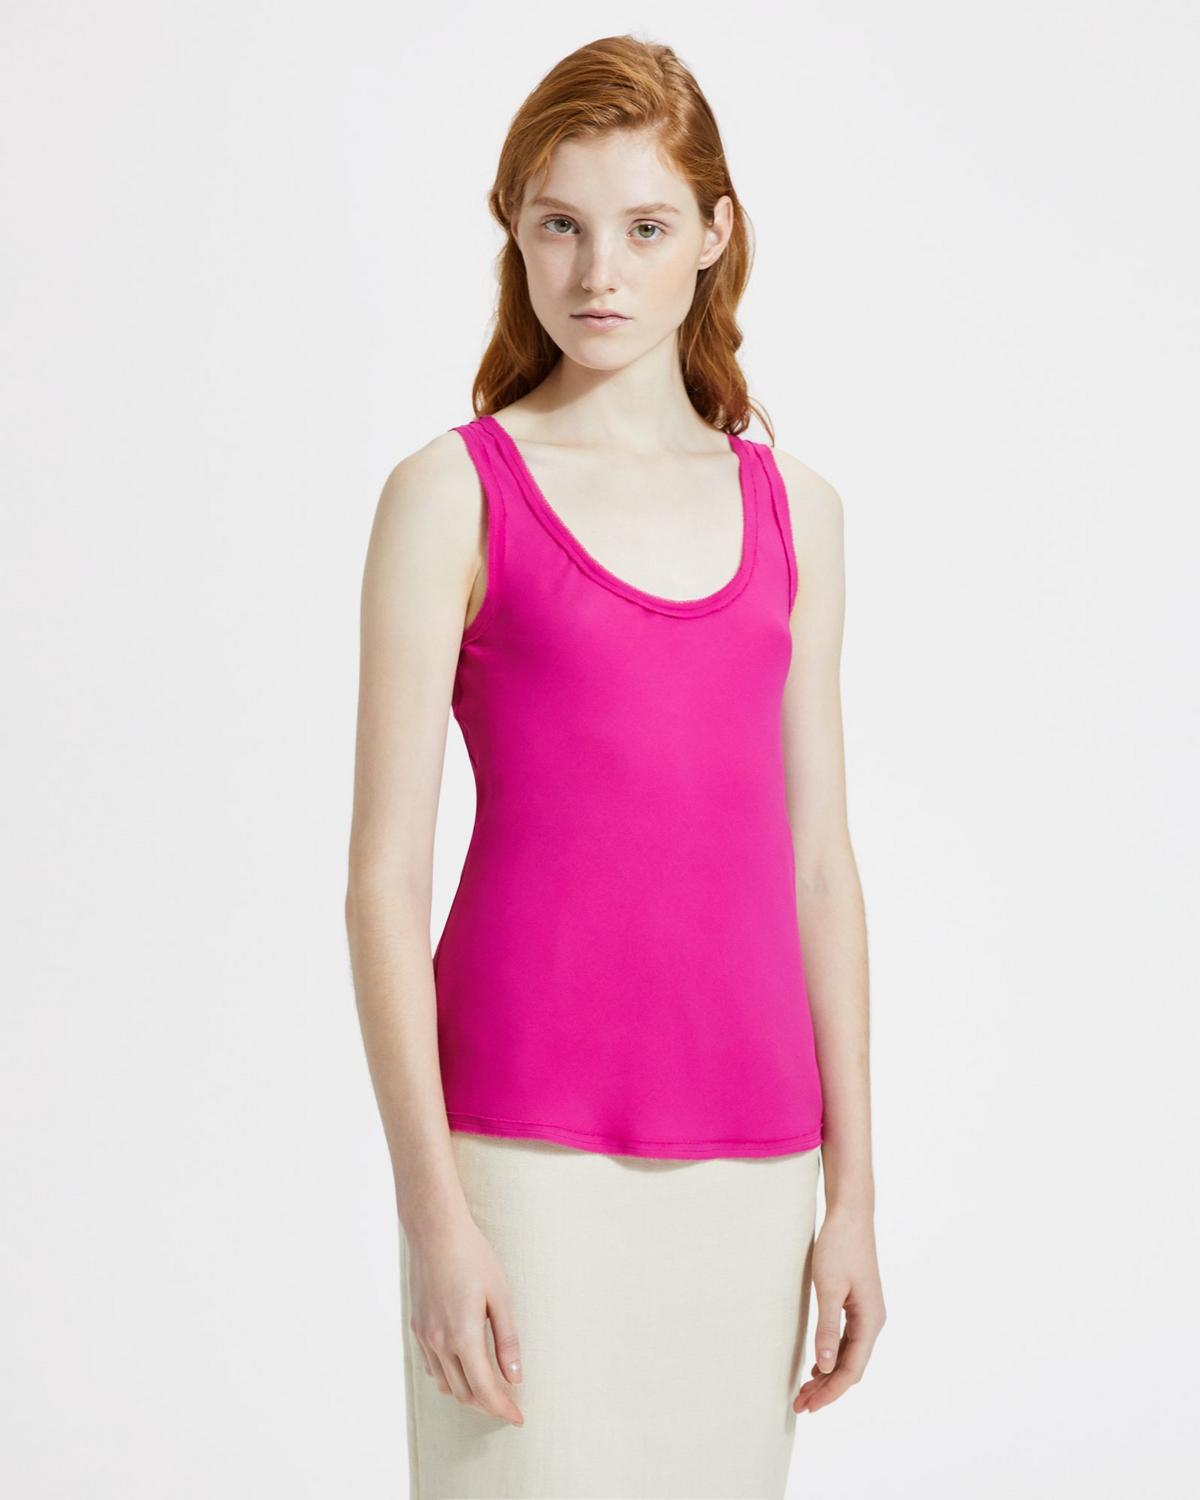 Silk Scoop Tank Top